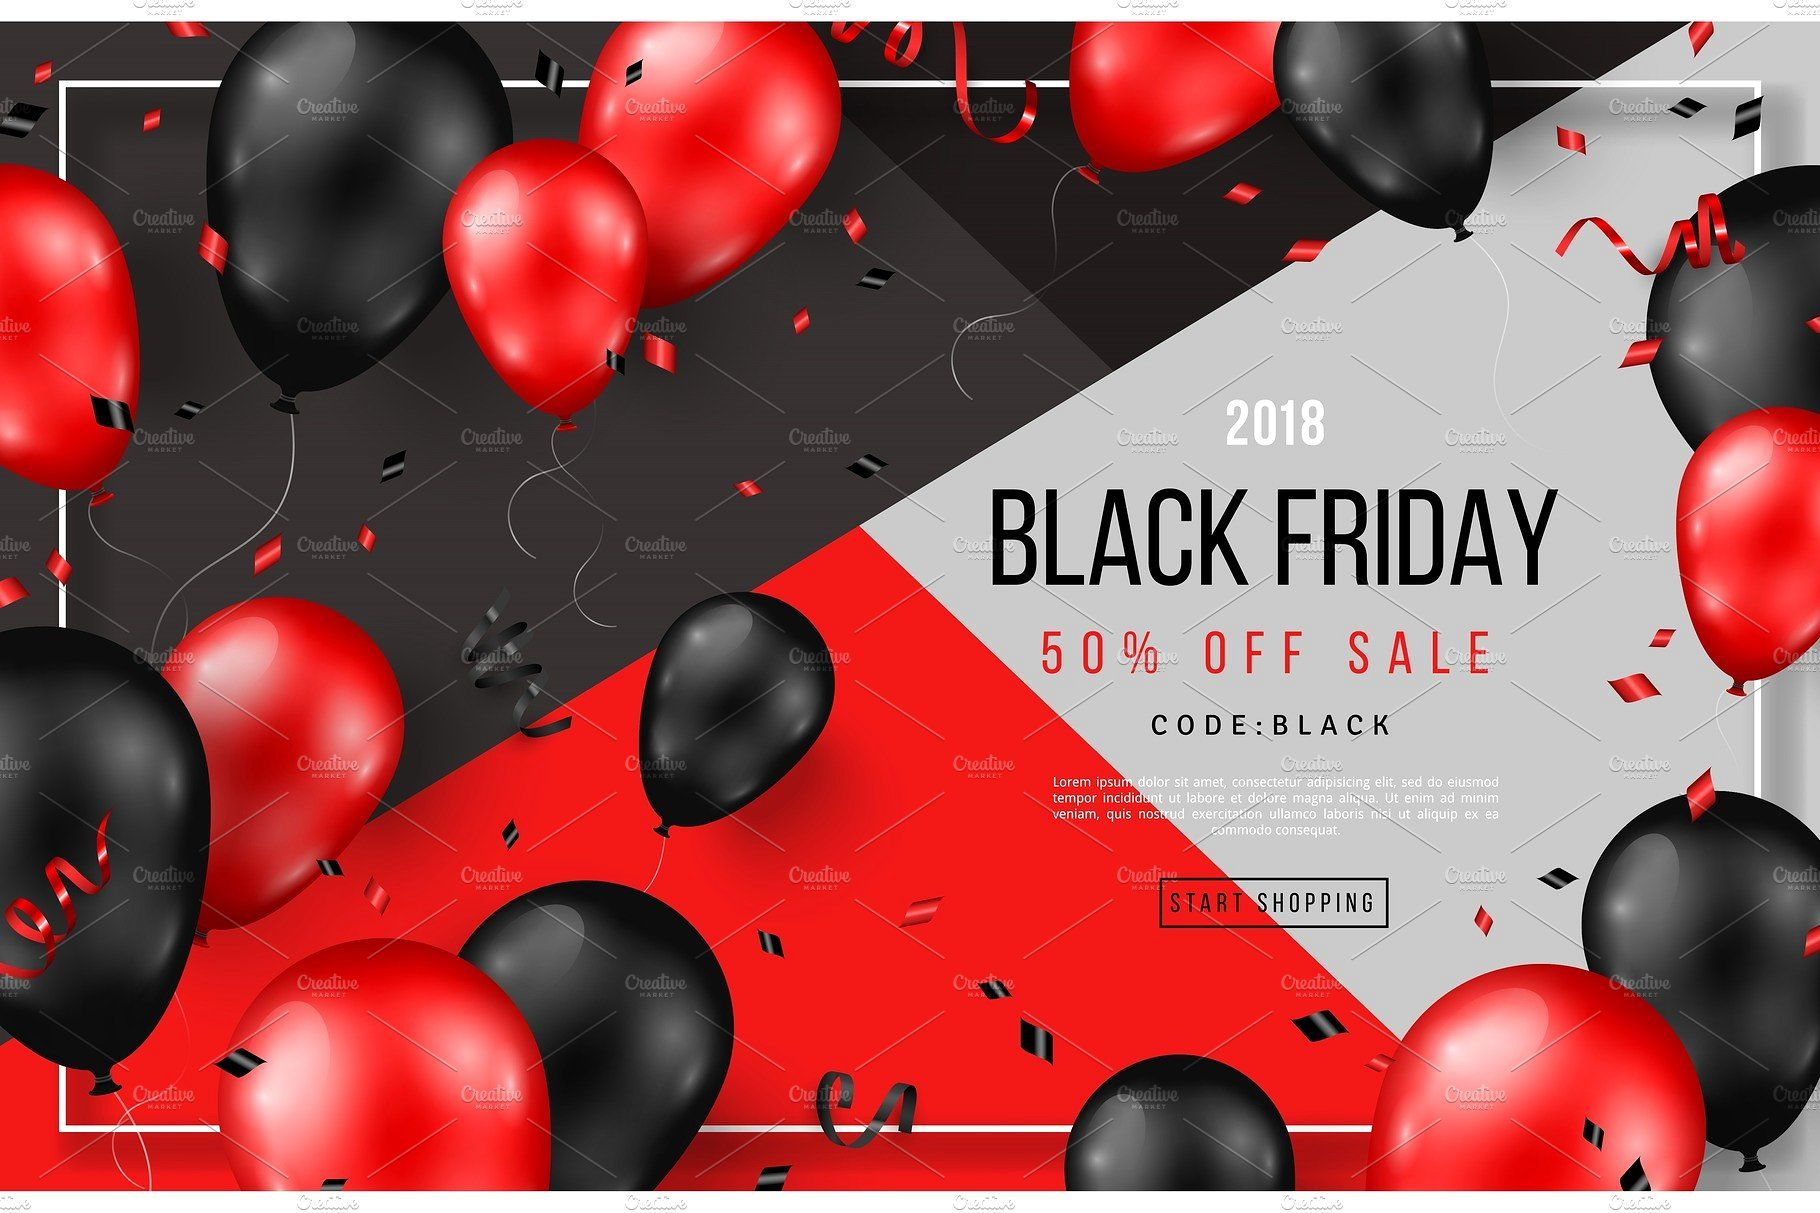 Black Friday Sale With Balloons Black Friday Sale Poster Black Friday Black Friday Sale